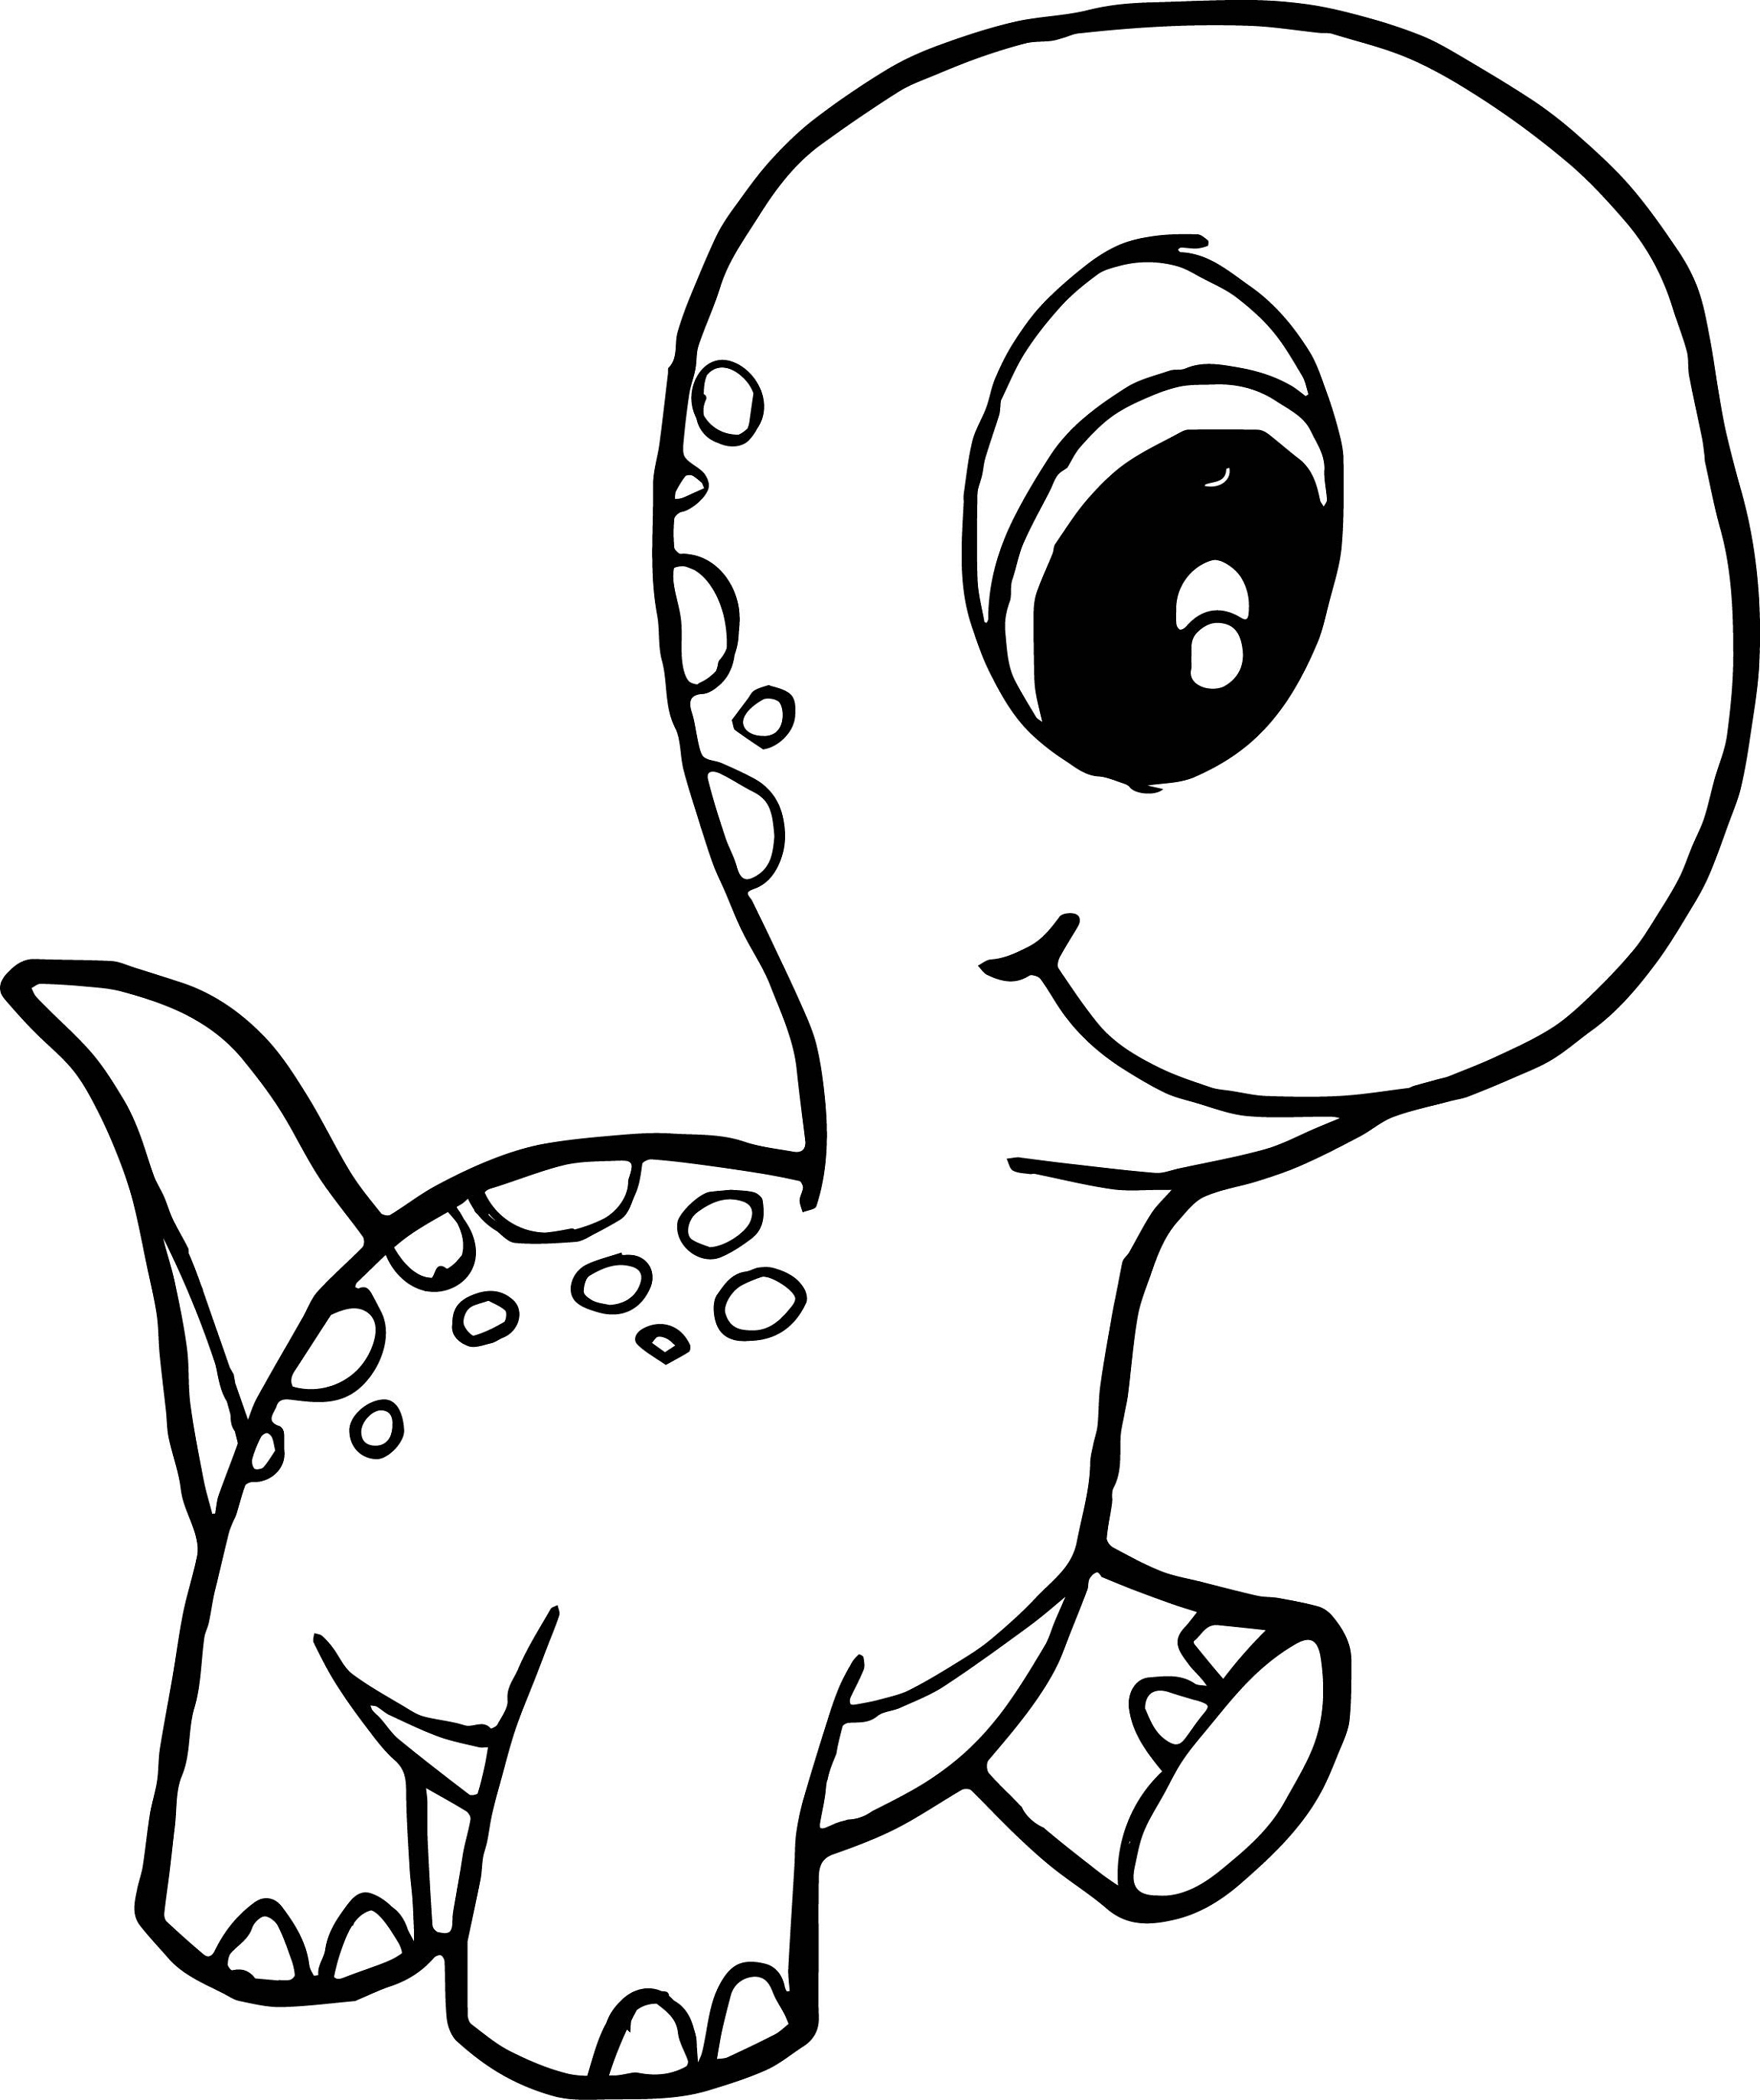 dinosaurs to colour in baby dinosaur coloring pages for preschoolers activity colour dinosaurs to in